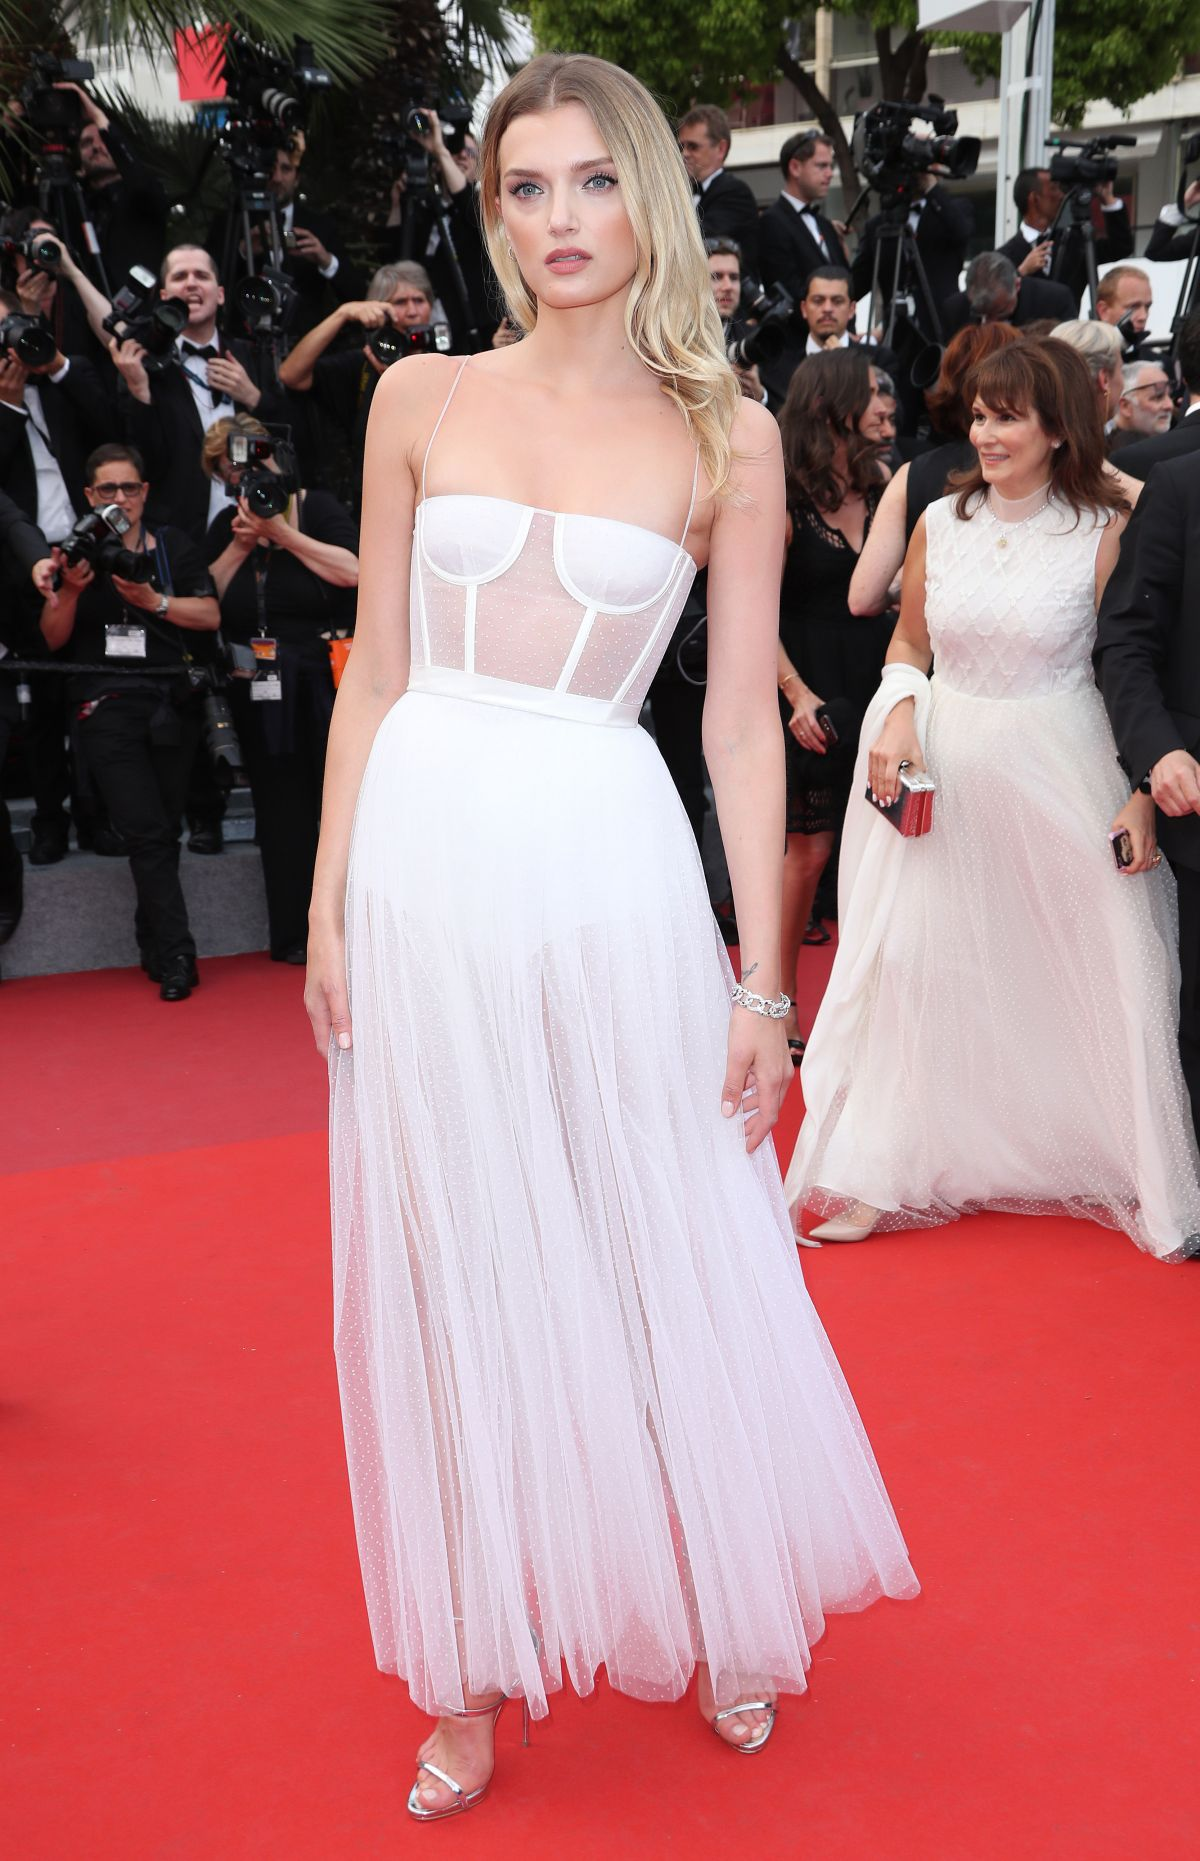 Cannes 2017 Heidi Klum Continues A Cannes Tradition In: LILY DONALDSON At Loveless Premiere At 2017 Cannes Film